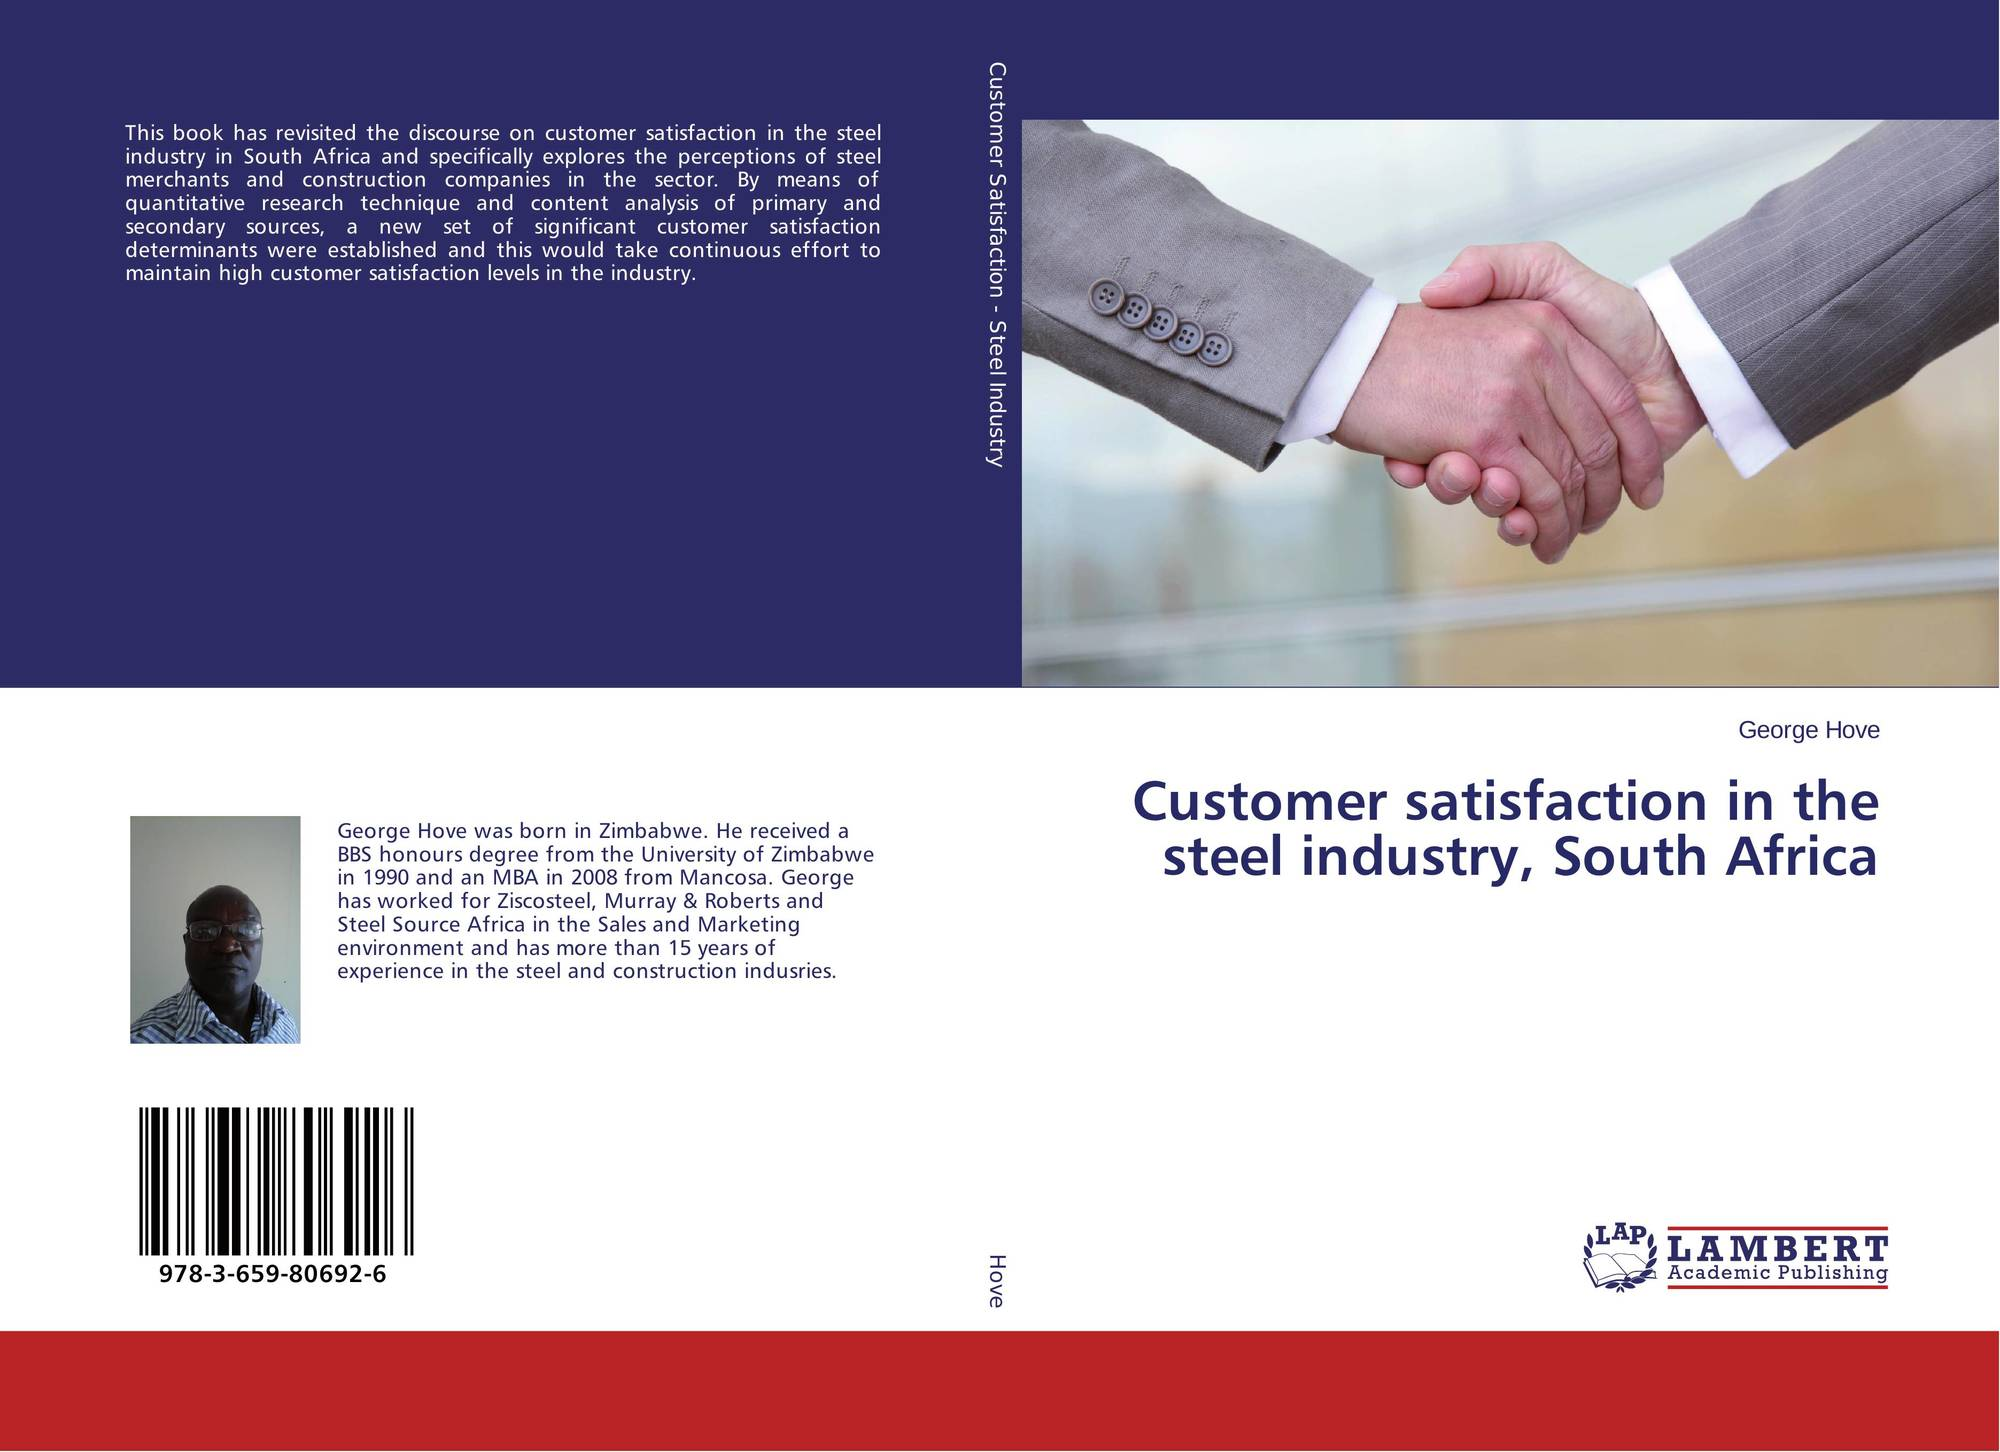 thesis customer satisfaction customer satisfaction in the steel industry south africa lambert academic publishing customer satisfaction in the steel industry south africa lambert